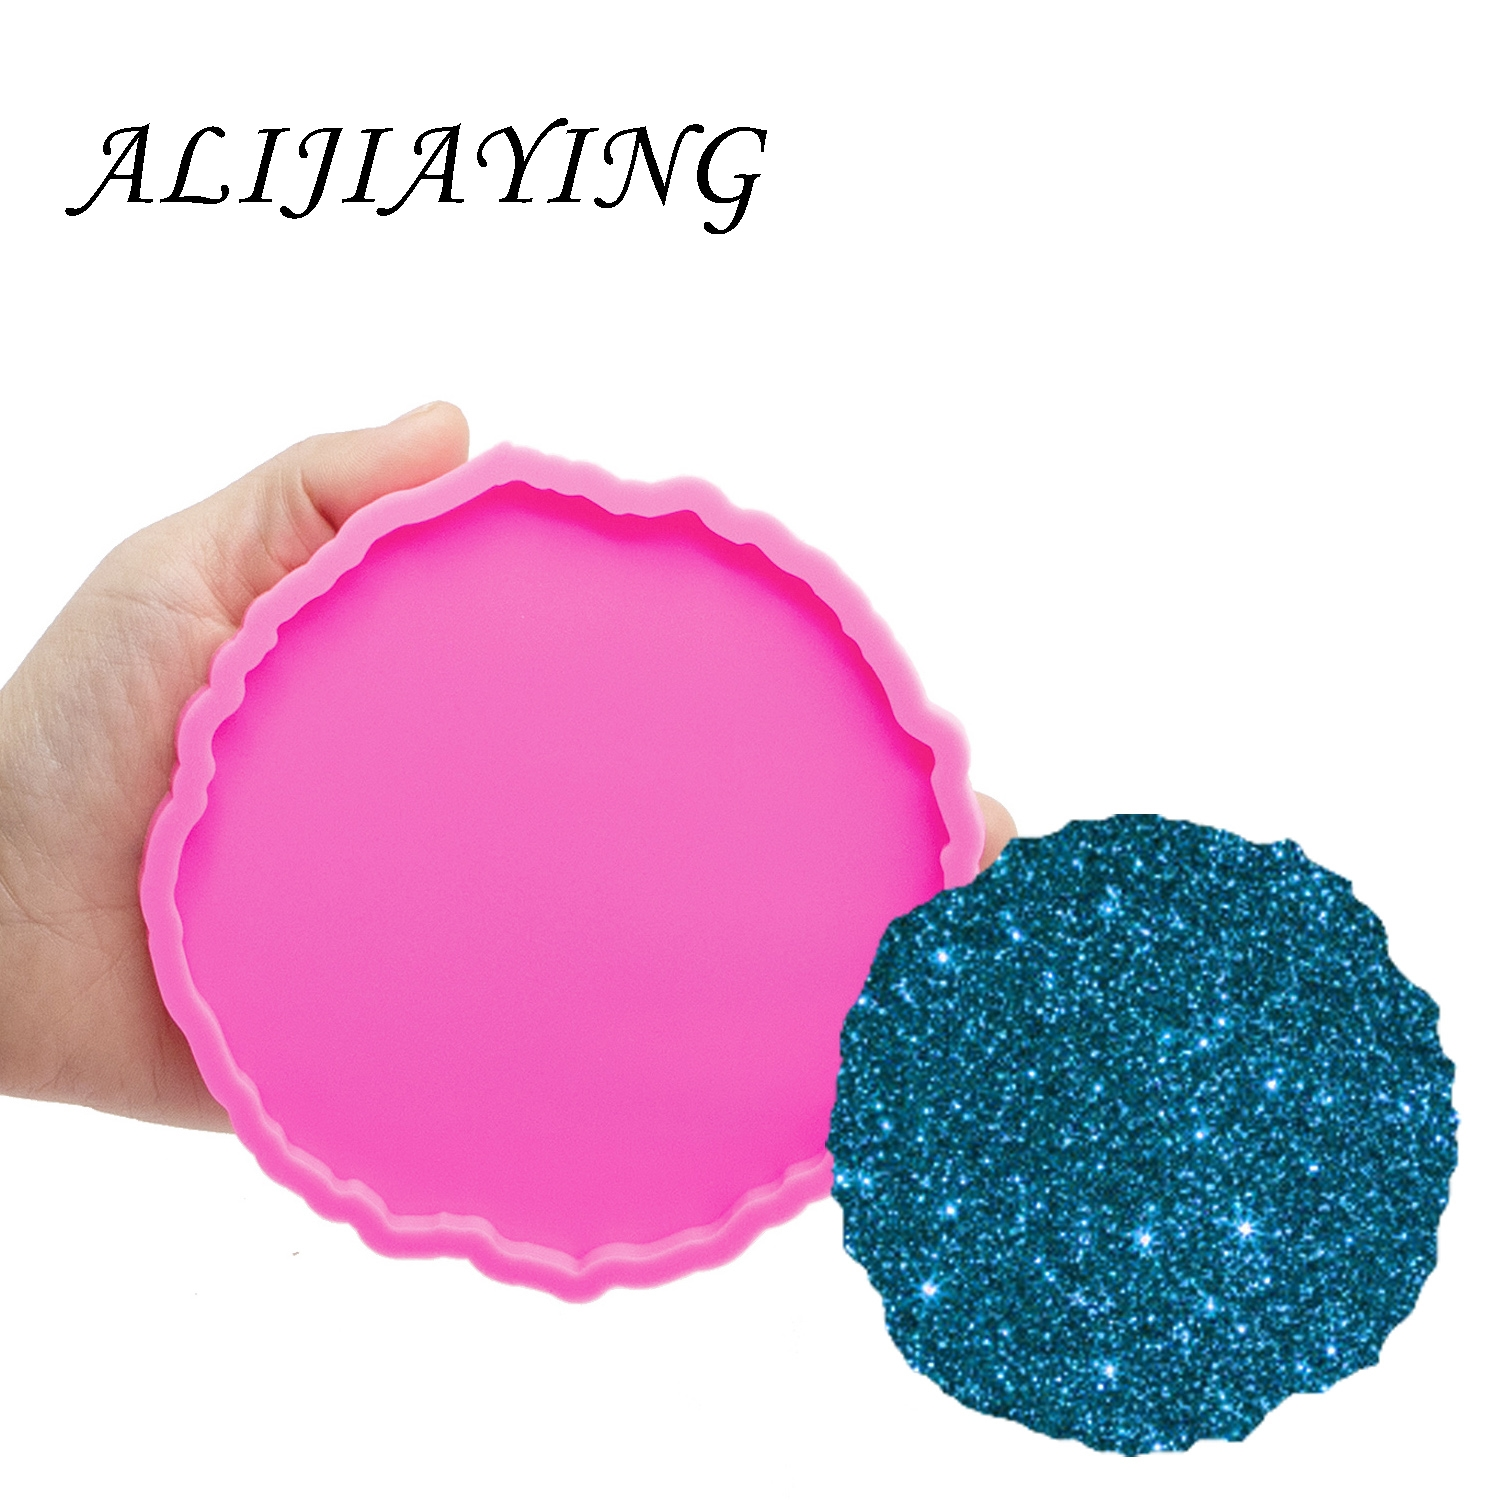 4.1/4.9 Inches Circle Molds Silicone Mold For Resin Epoxy Craft  DIY Round Silicone Geode Coaster Agate Resin Mold DY0270